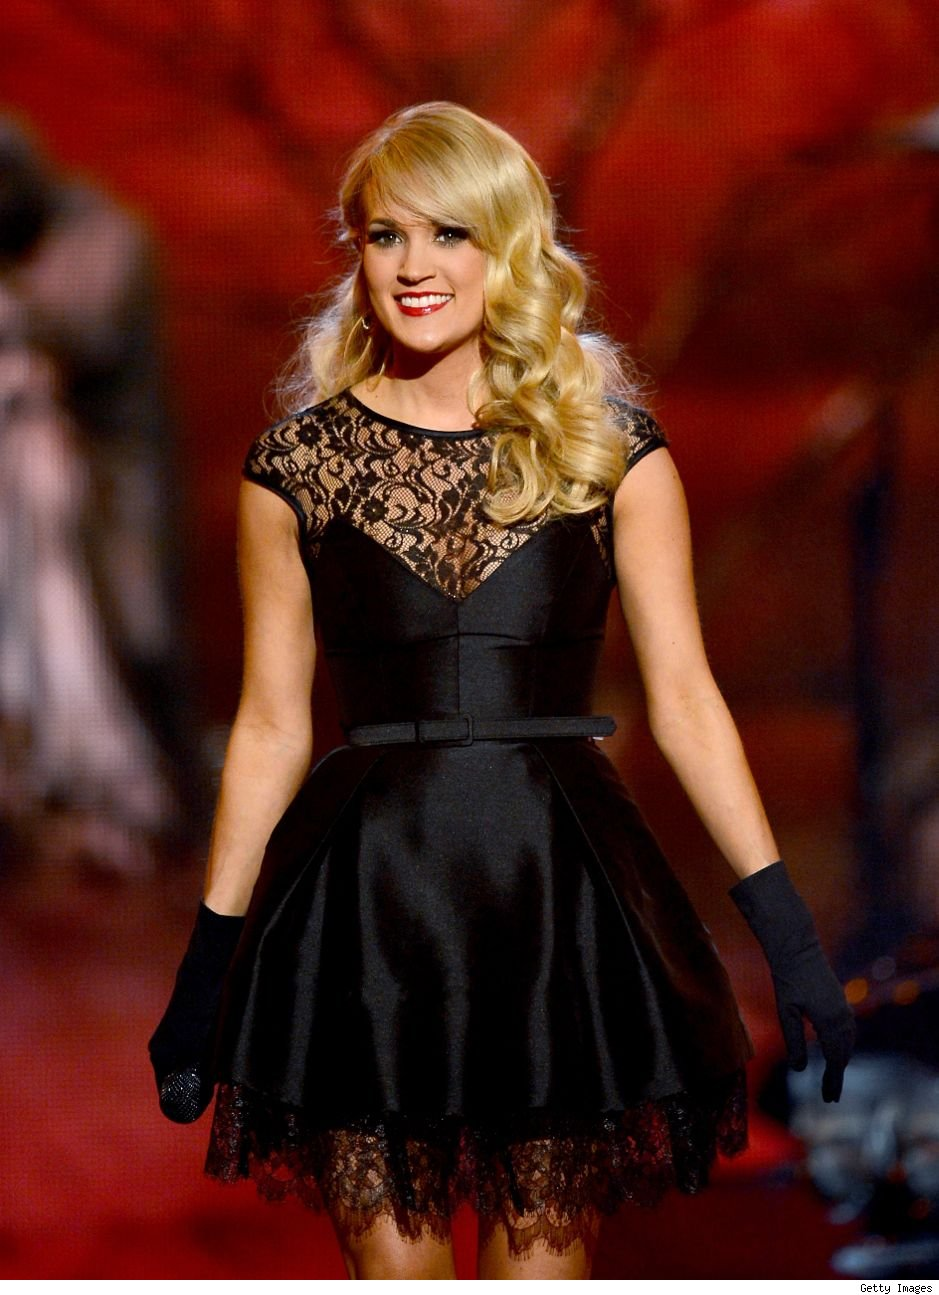 Carrie Underwood See You Again CMT Awards 2013 video